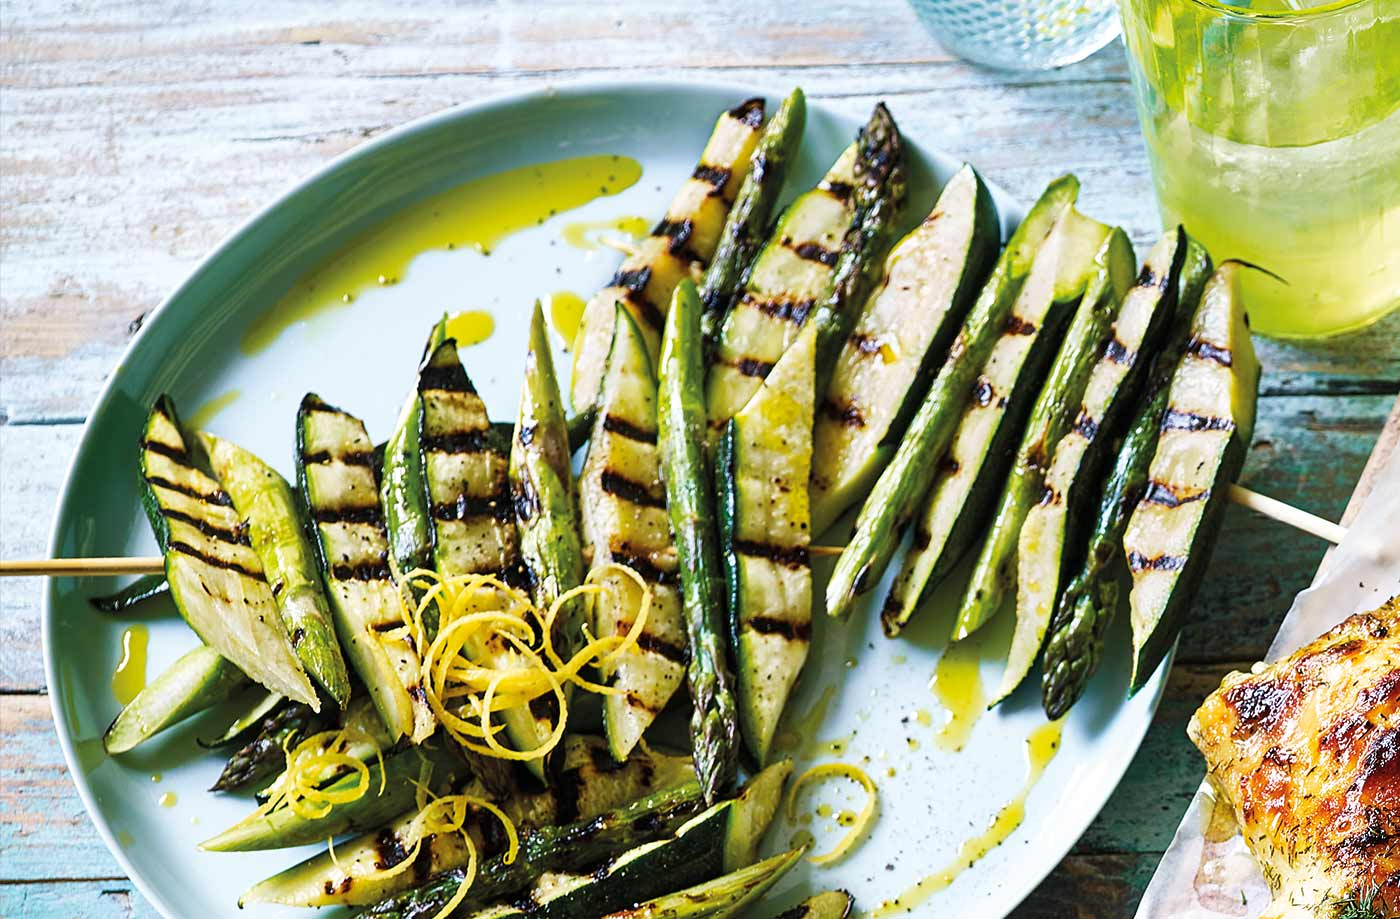 Courgette and asparagus ladders recipe